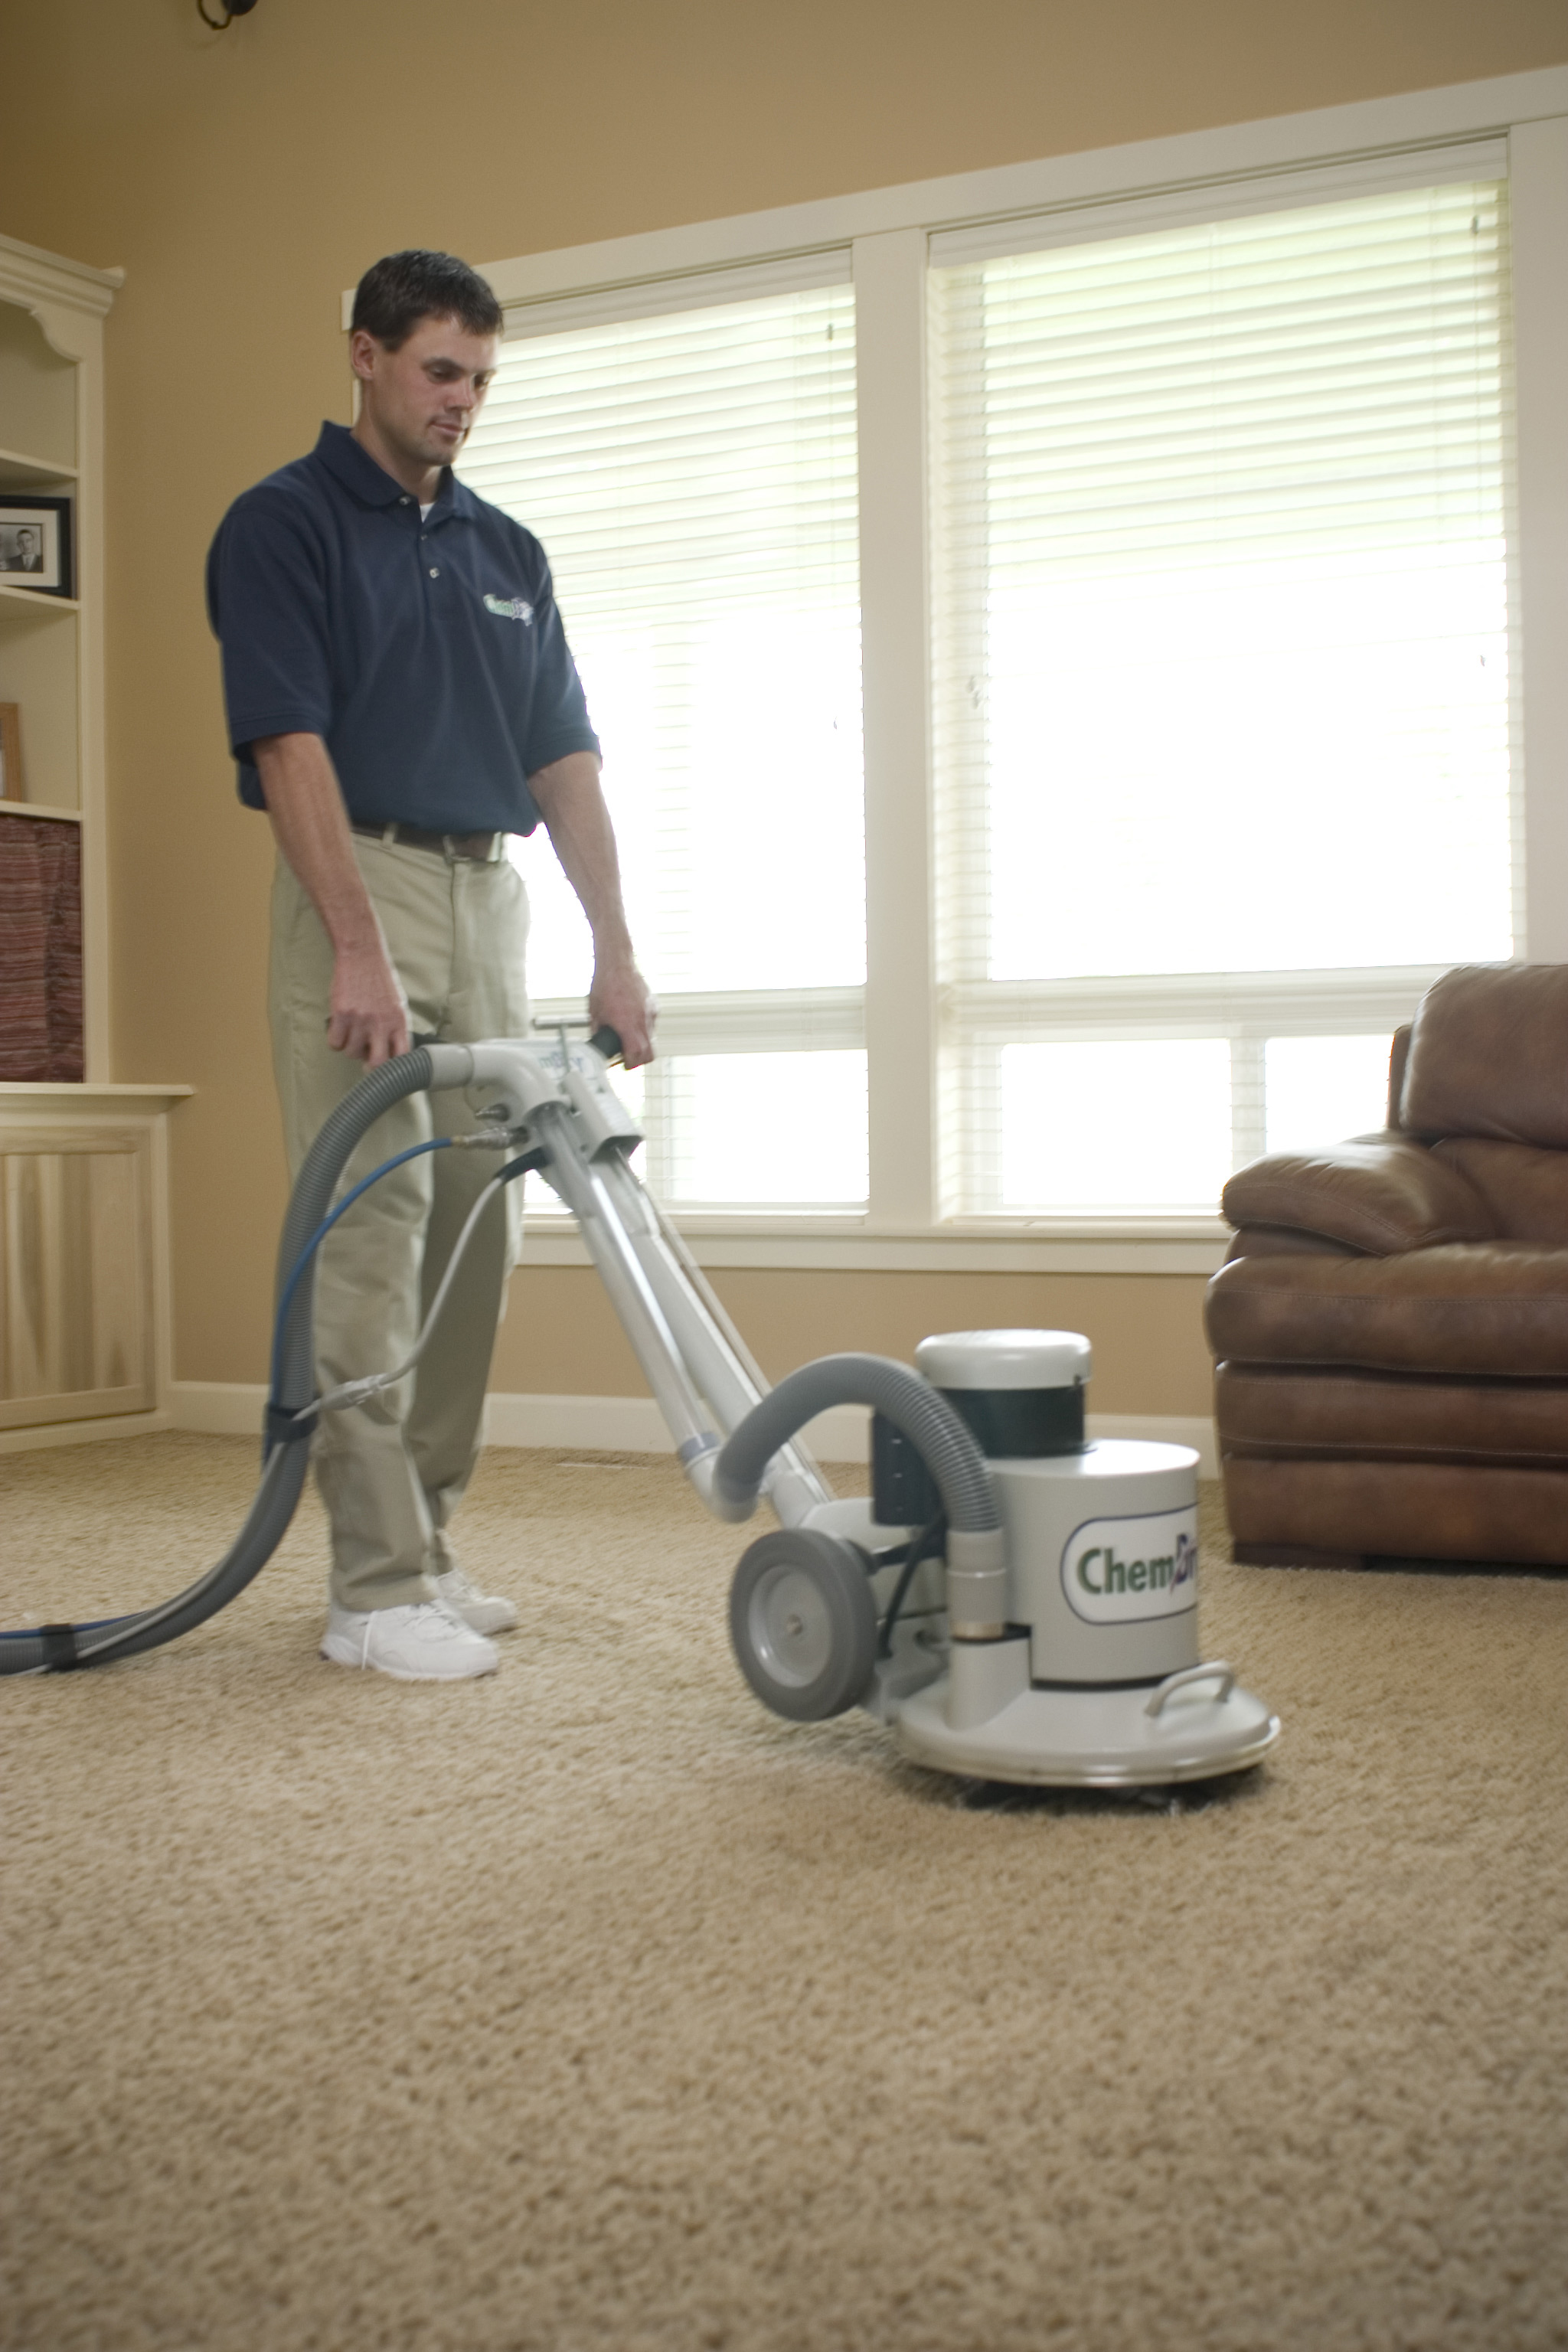 Executive Chem-Dry Technician Performing Professional Carpet Cleaning